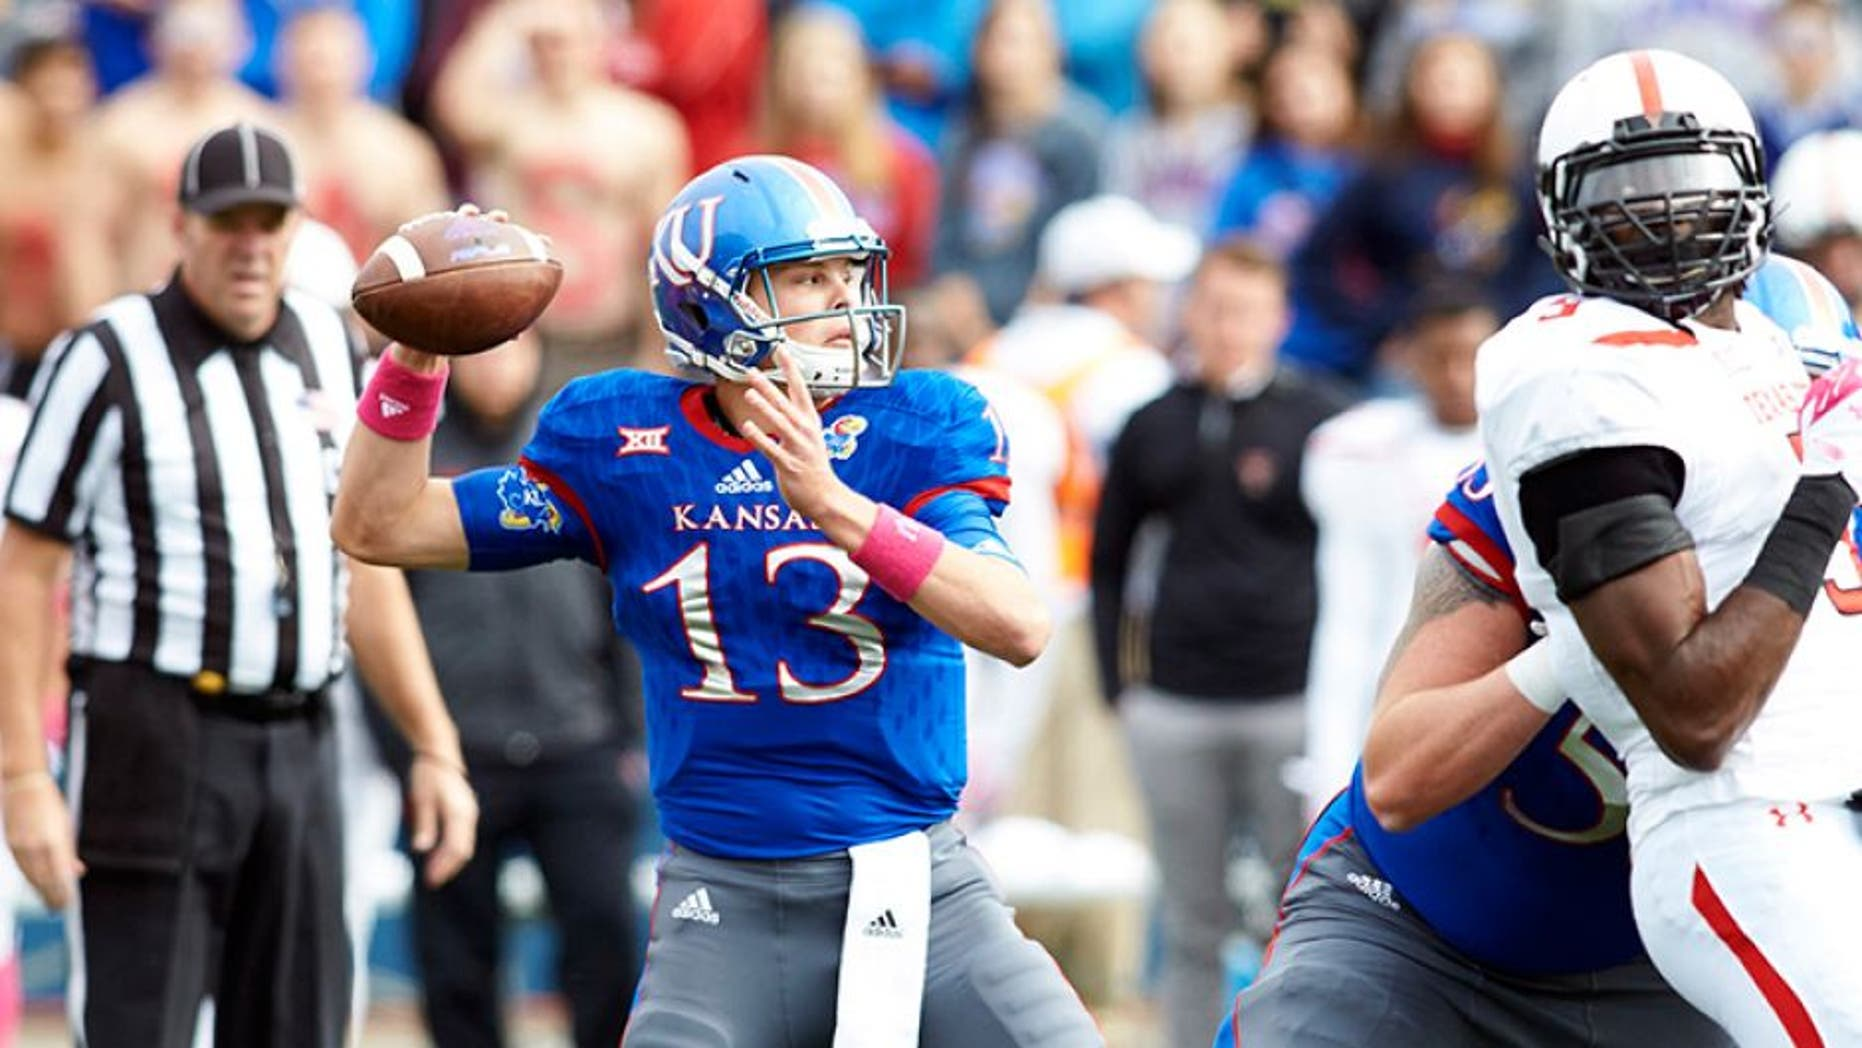 Oct 17, 2015; Lawrence, KS, USA; DUPLICATE Kansas Jayhawks quarterback Ryan Willis (13) throws the ball down the field against Texas Tech at Memorial Stadium. Mandatory Credit: Gary Rohman/MLS/USA TODAY Sports